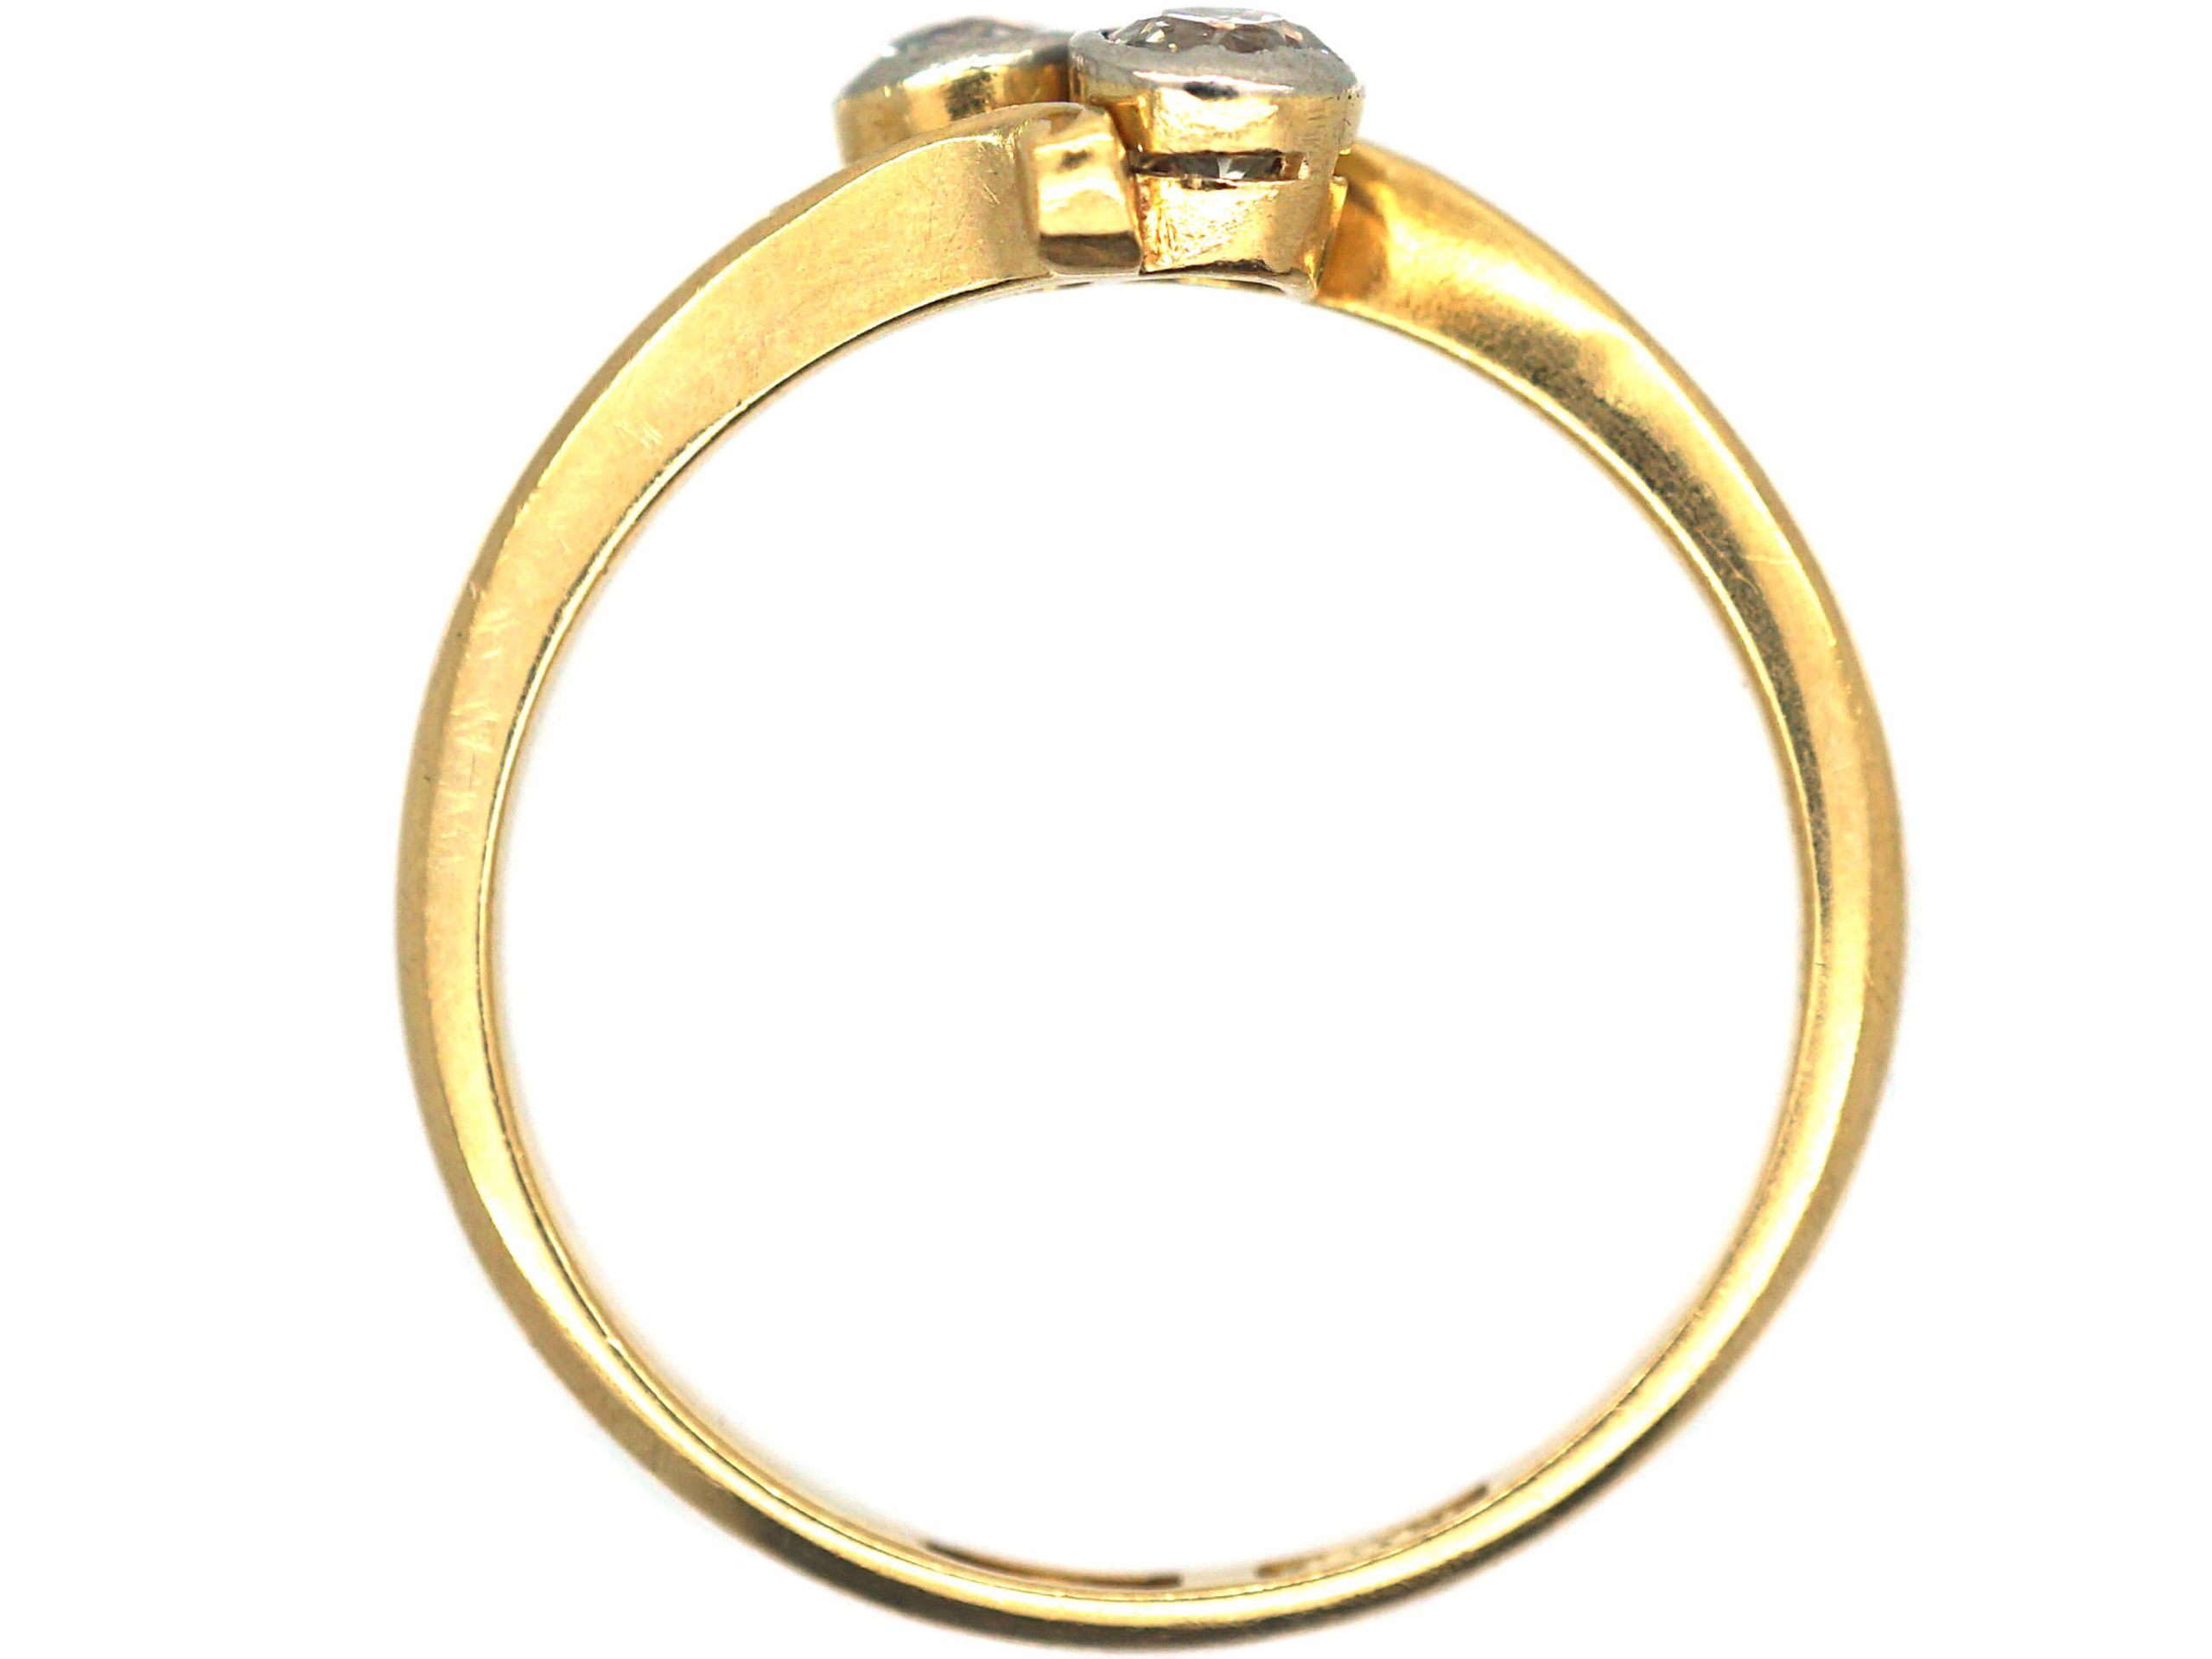 Edwardian 18ct Gold Two Stone Diamond Crossover Ring